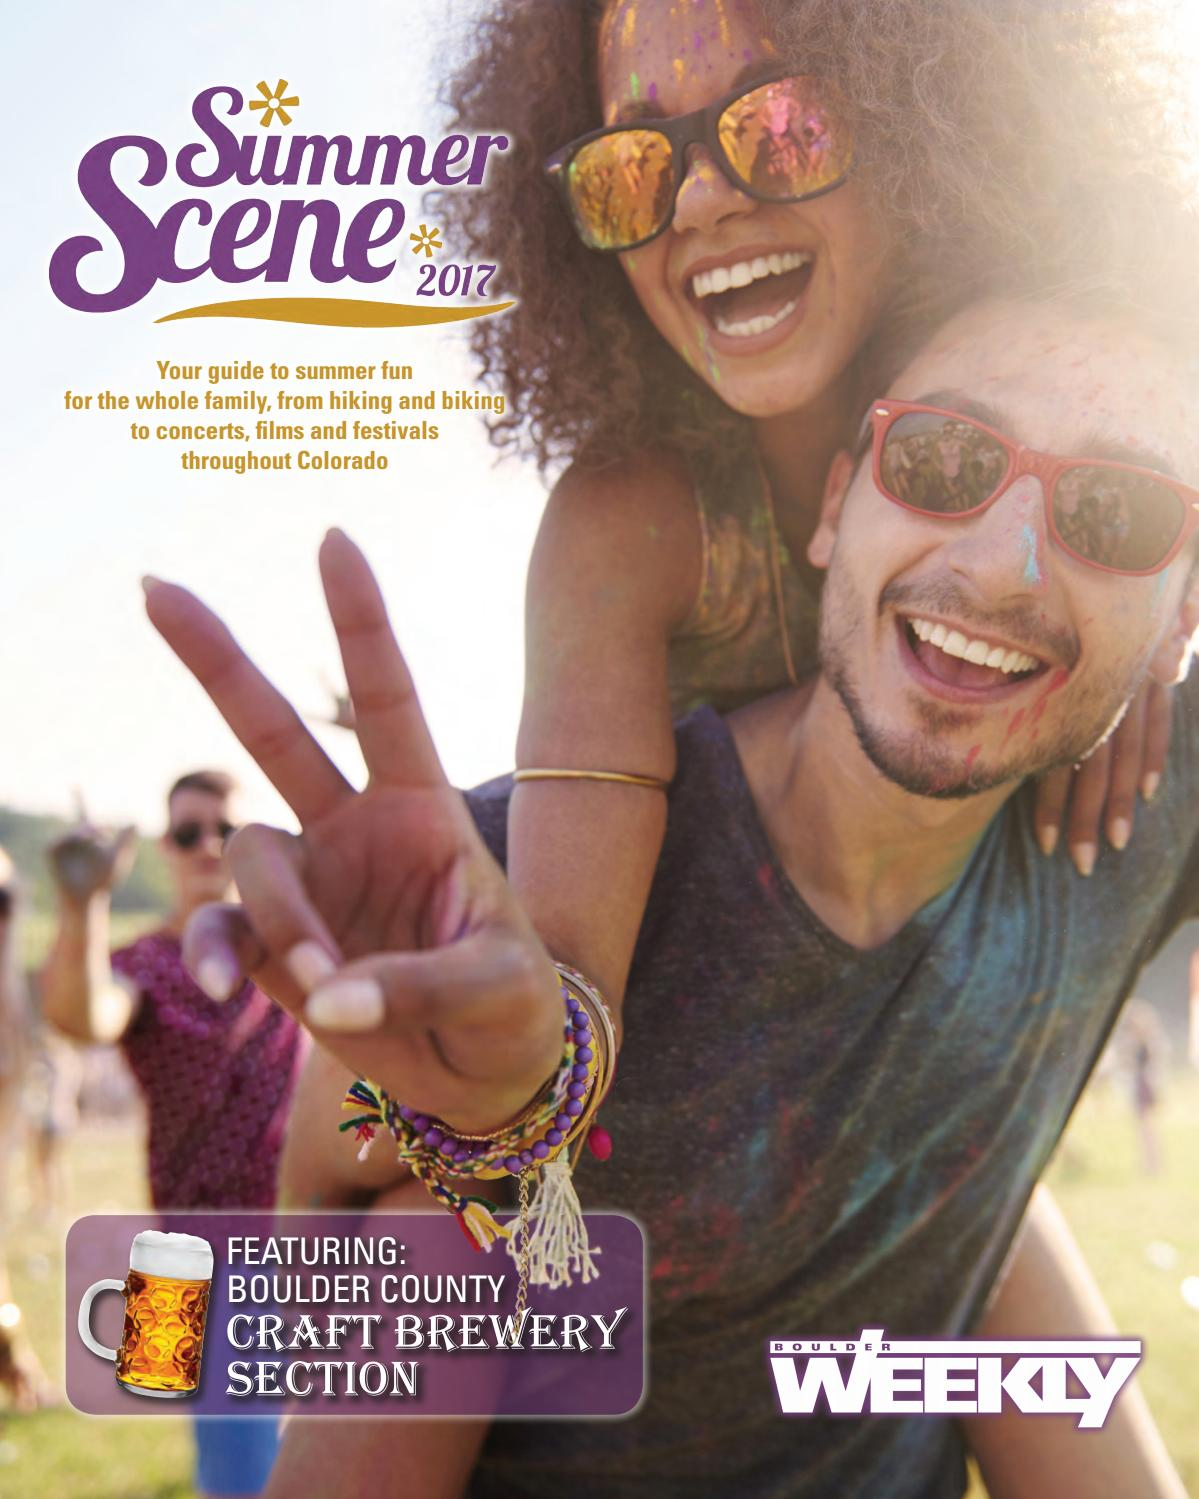 65e6c2d2d43 5 25 17 summer scene by Boulder Weekly - issuu